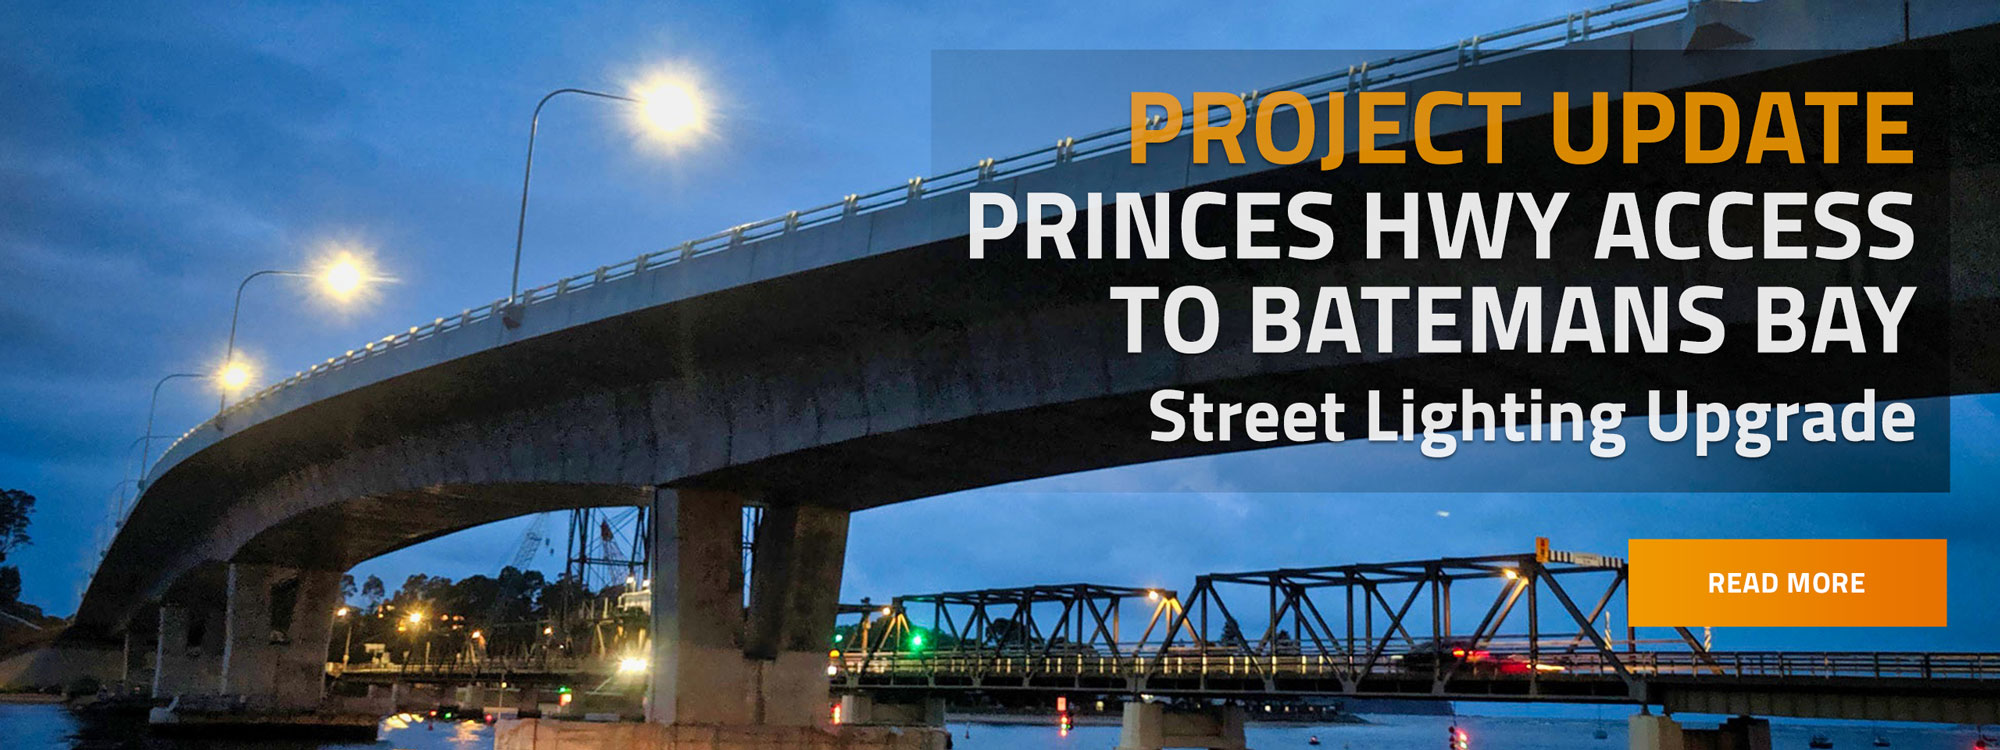 street-lighting-upgrade-princes-highway-access-to-batemans-bay_banner